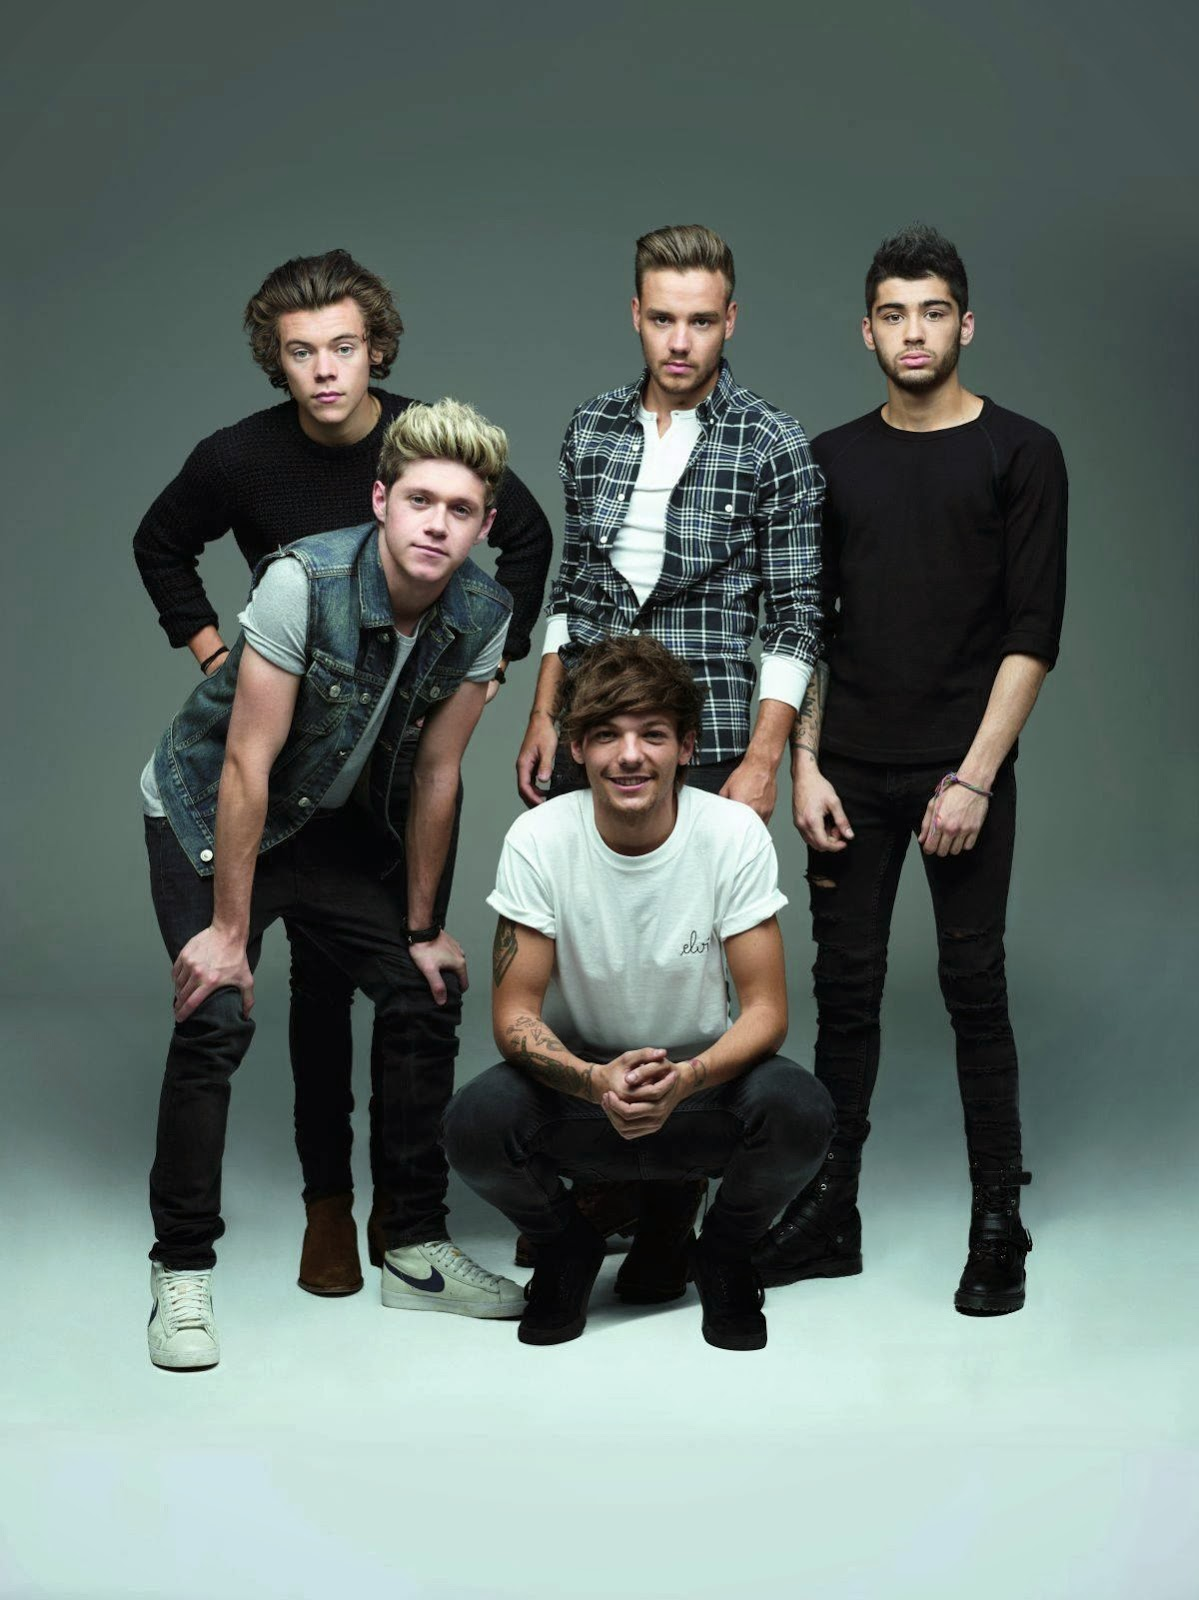 datei tumblr n2c2mnzmo51ra1ly1o1 one direction wiki niall james horan zayn jawaad. Black Bedroom Furniture Sets. Home Design Ideas